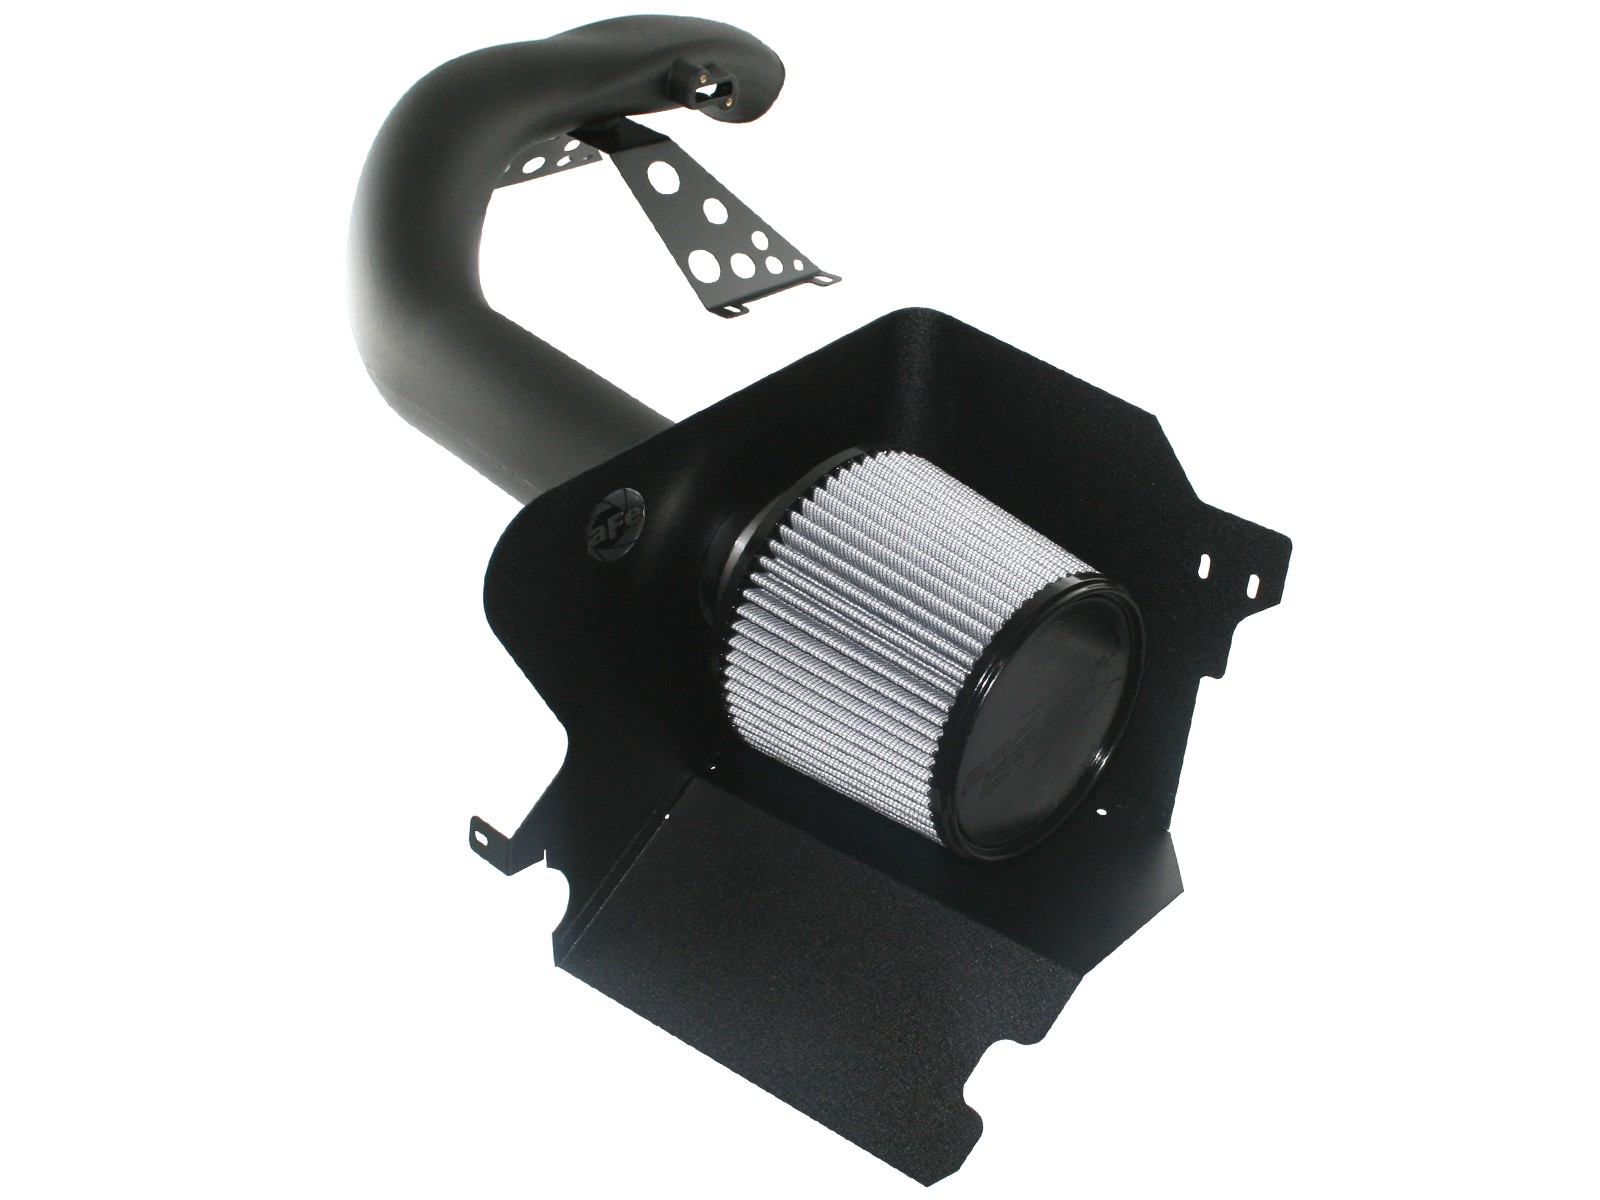 aFe POWER 51-10512 Magnum FORCE Stage-2 Pro DRY S Cold Air Intake System